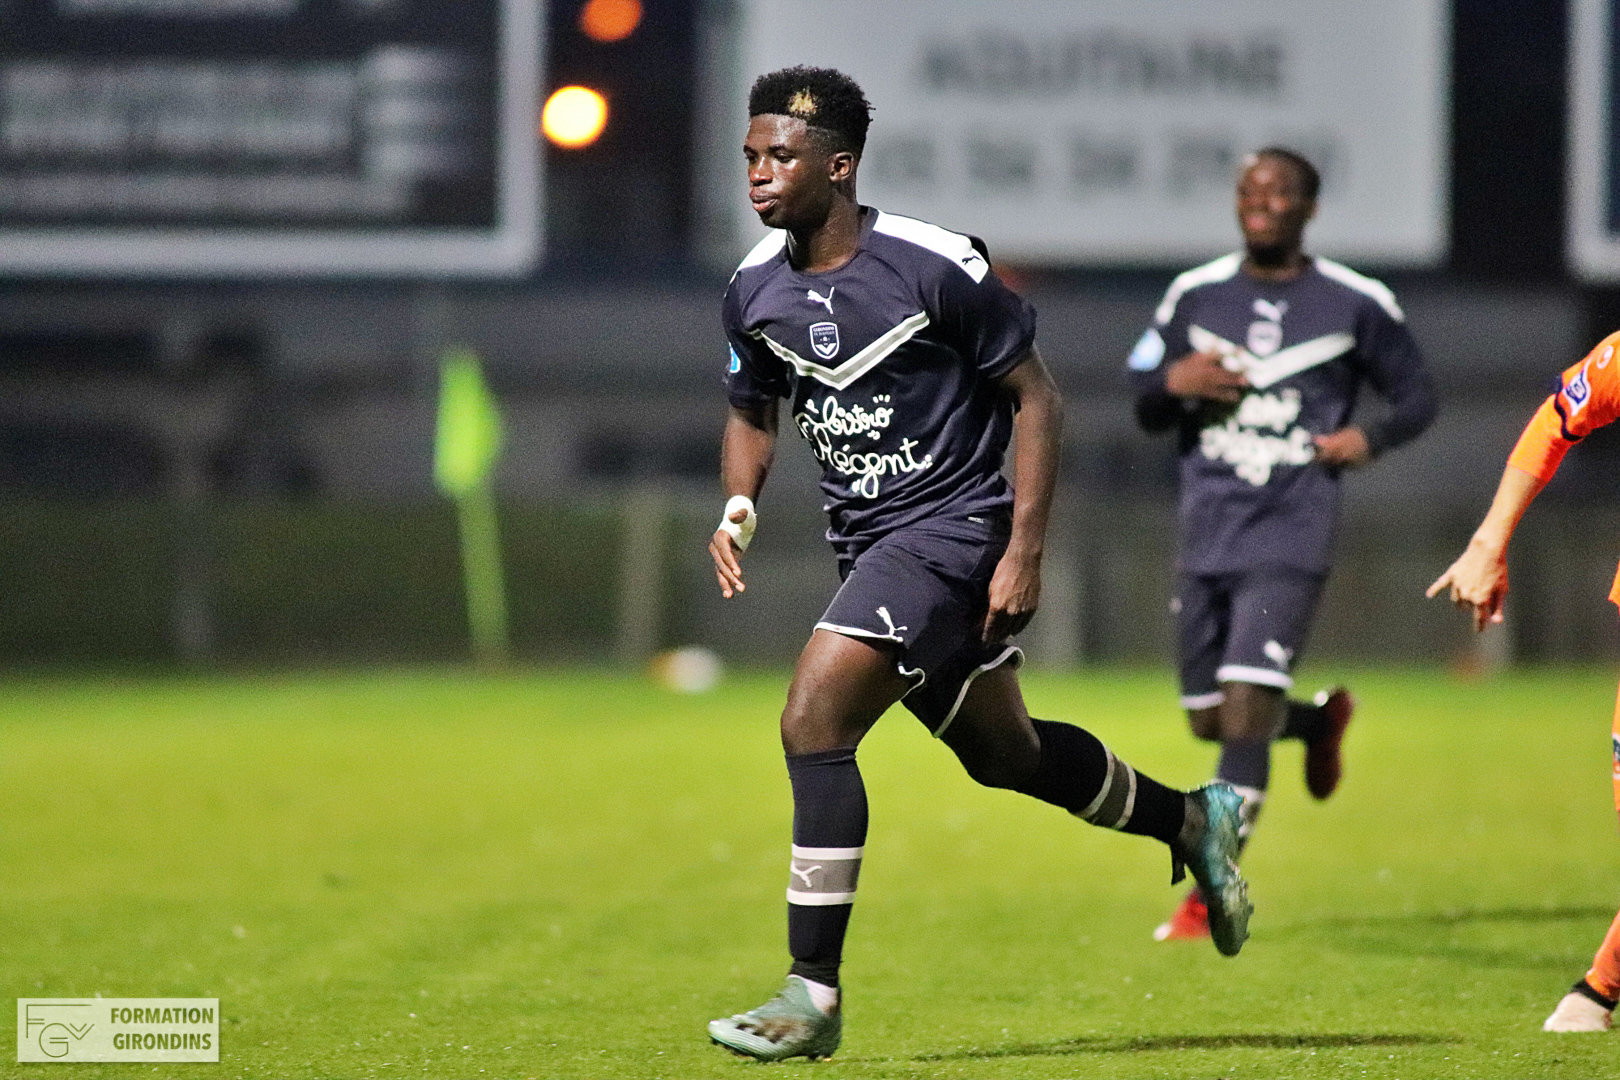 Cfa Girondins : Bordeaux s'incline encore - Formation Girondins